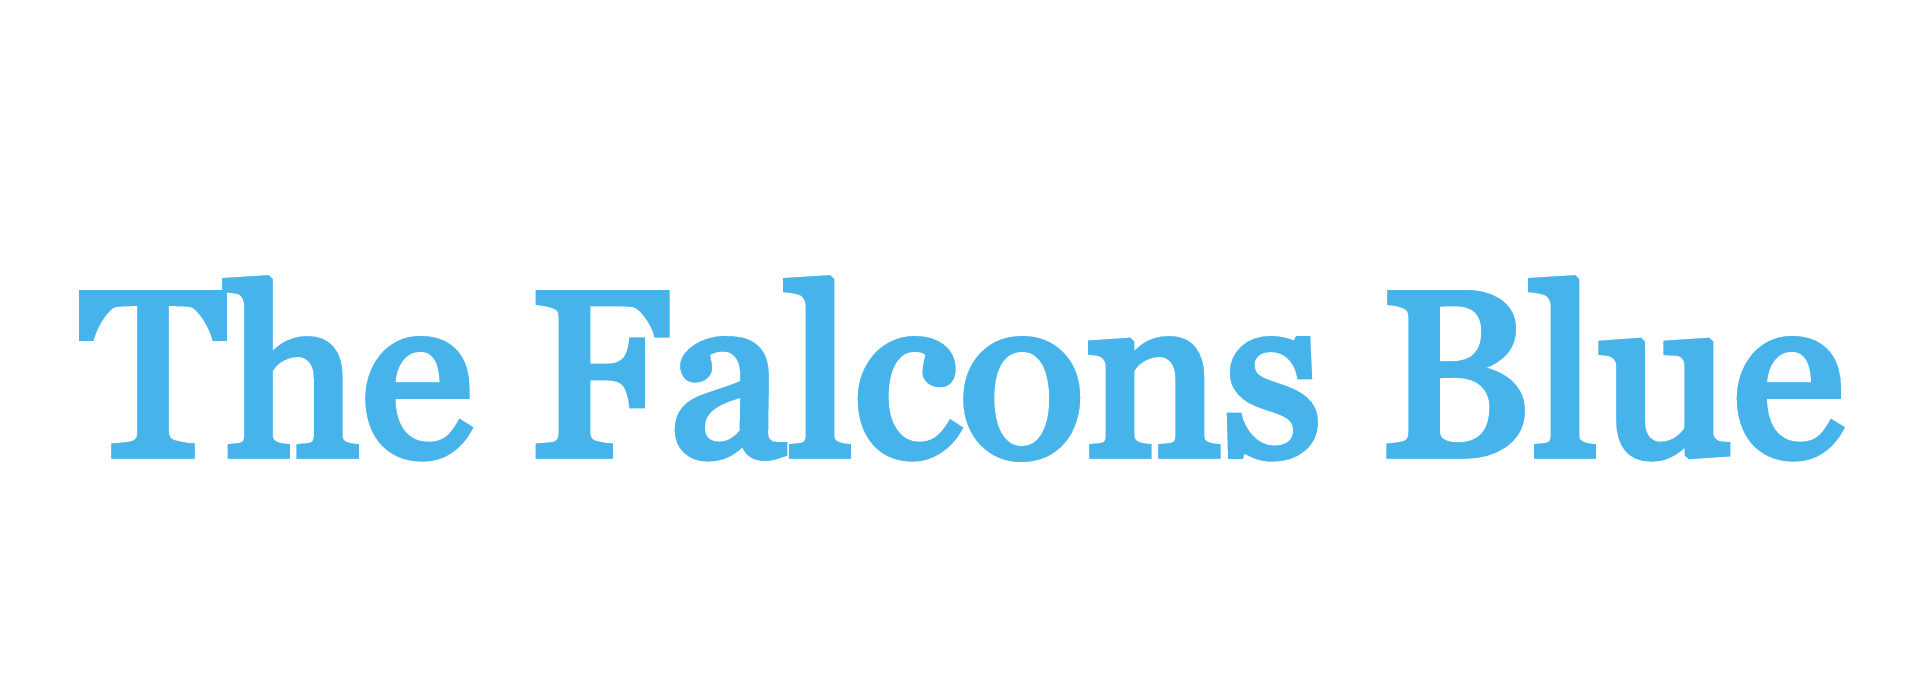 The Falcons Blue